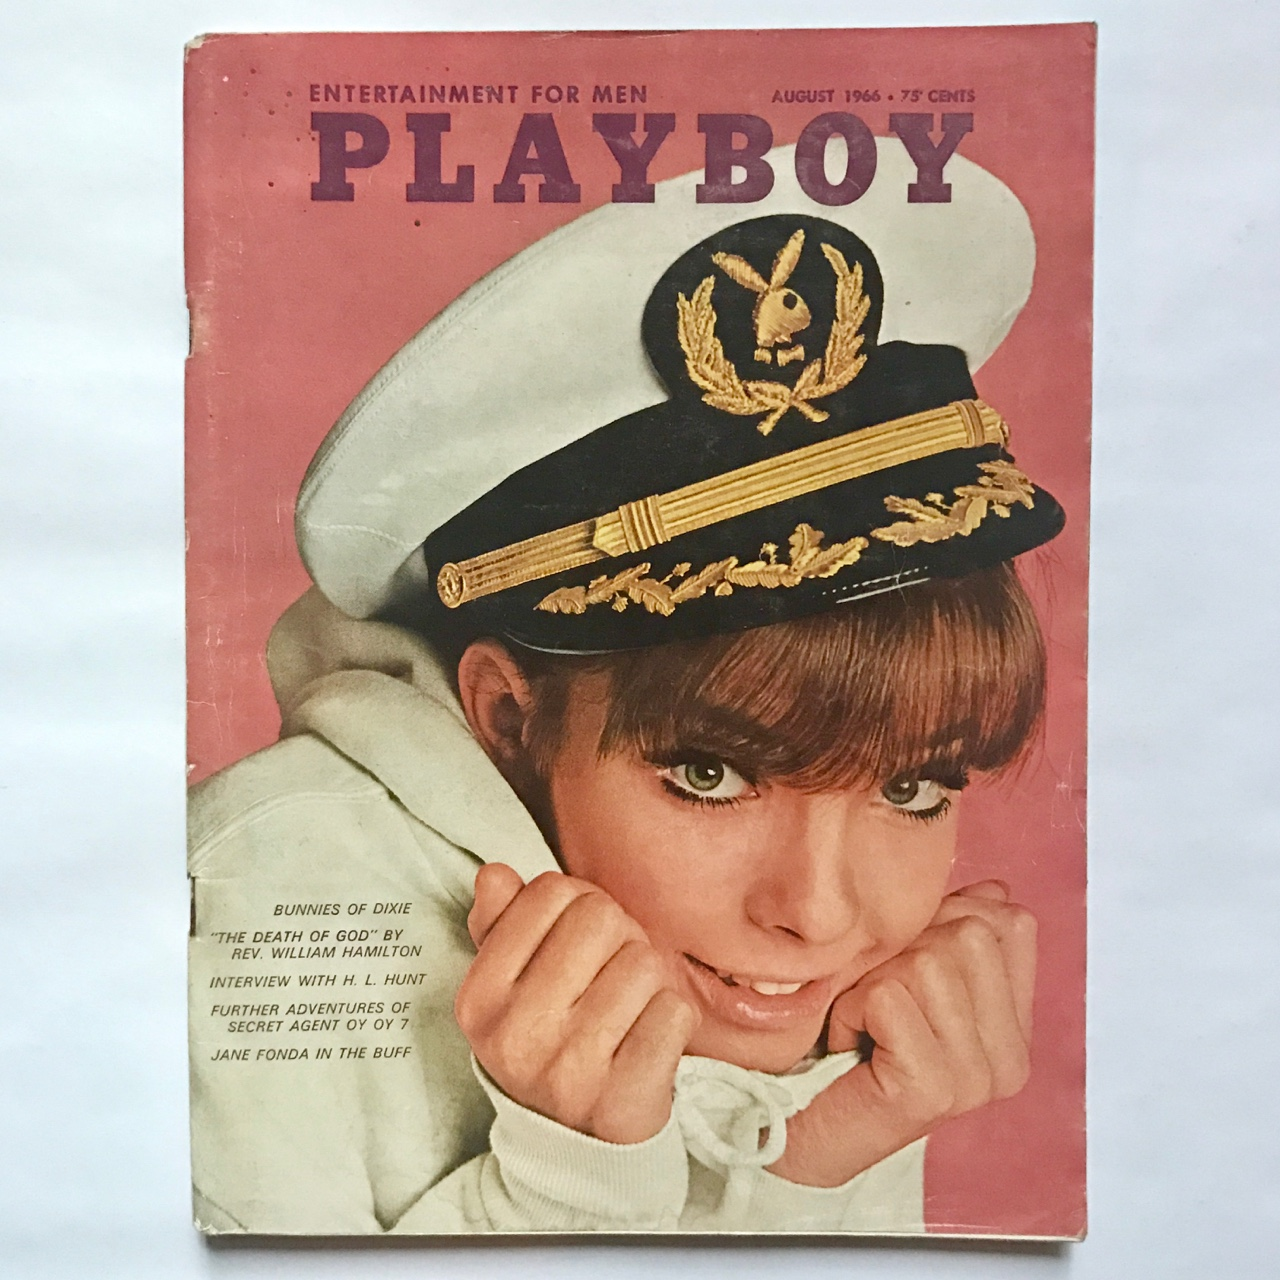 Product Image 1 - Playboy, August 1966. Includes a